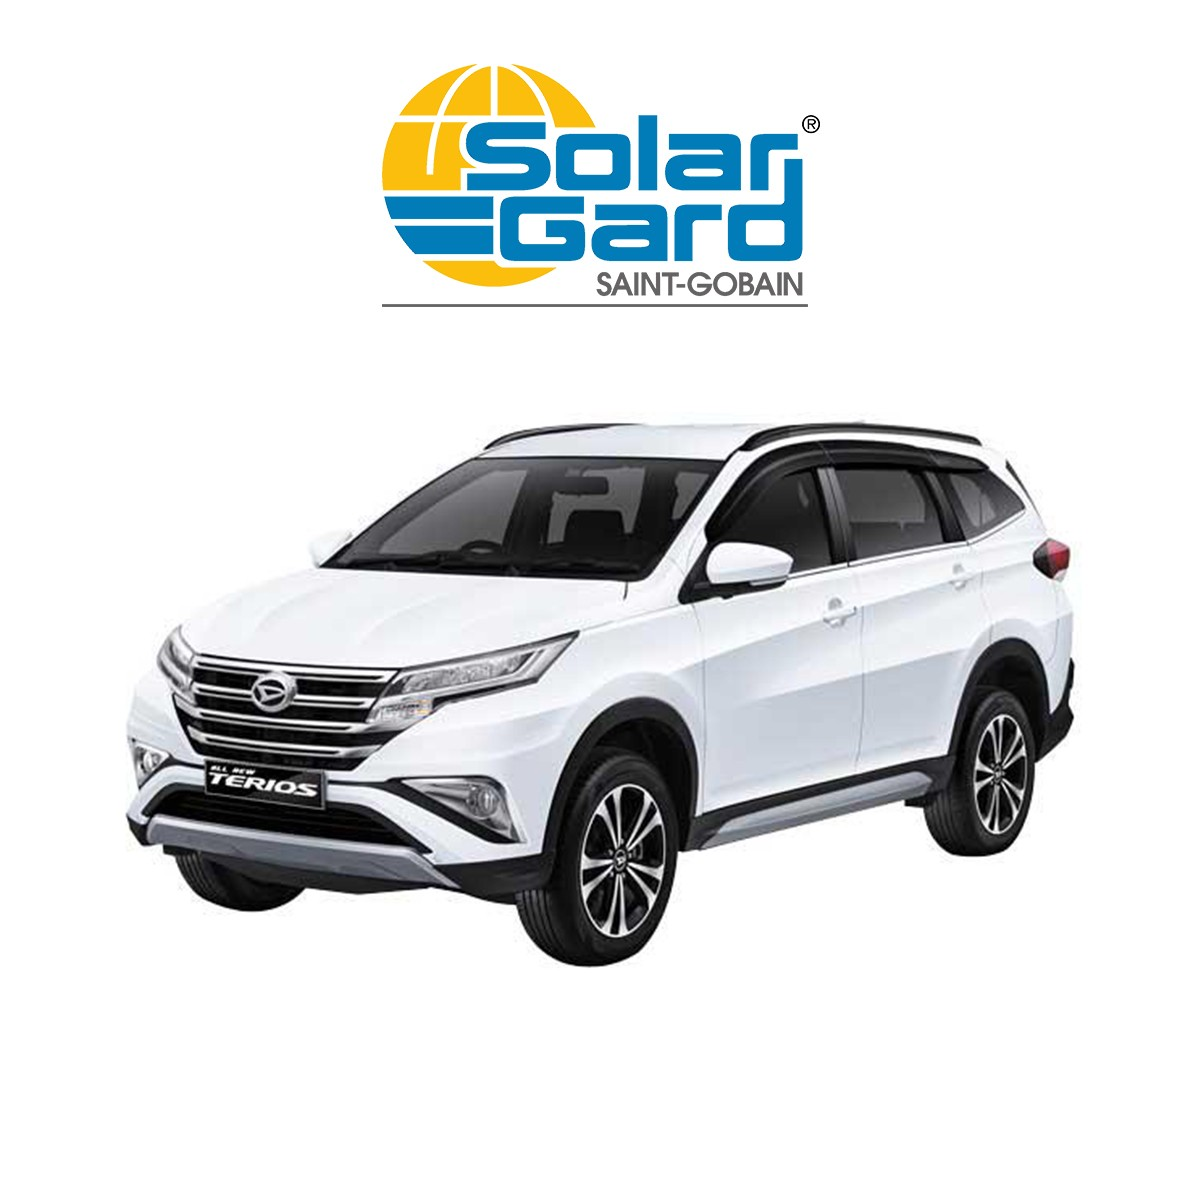 KACA FILM SOLAR GARD PLATINUM PERFORMANCE - (DAIHATSU ALL NEW TERIOS) FULL KACA